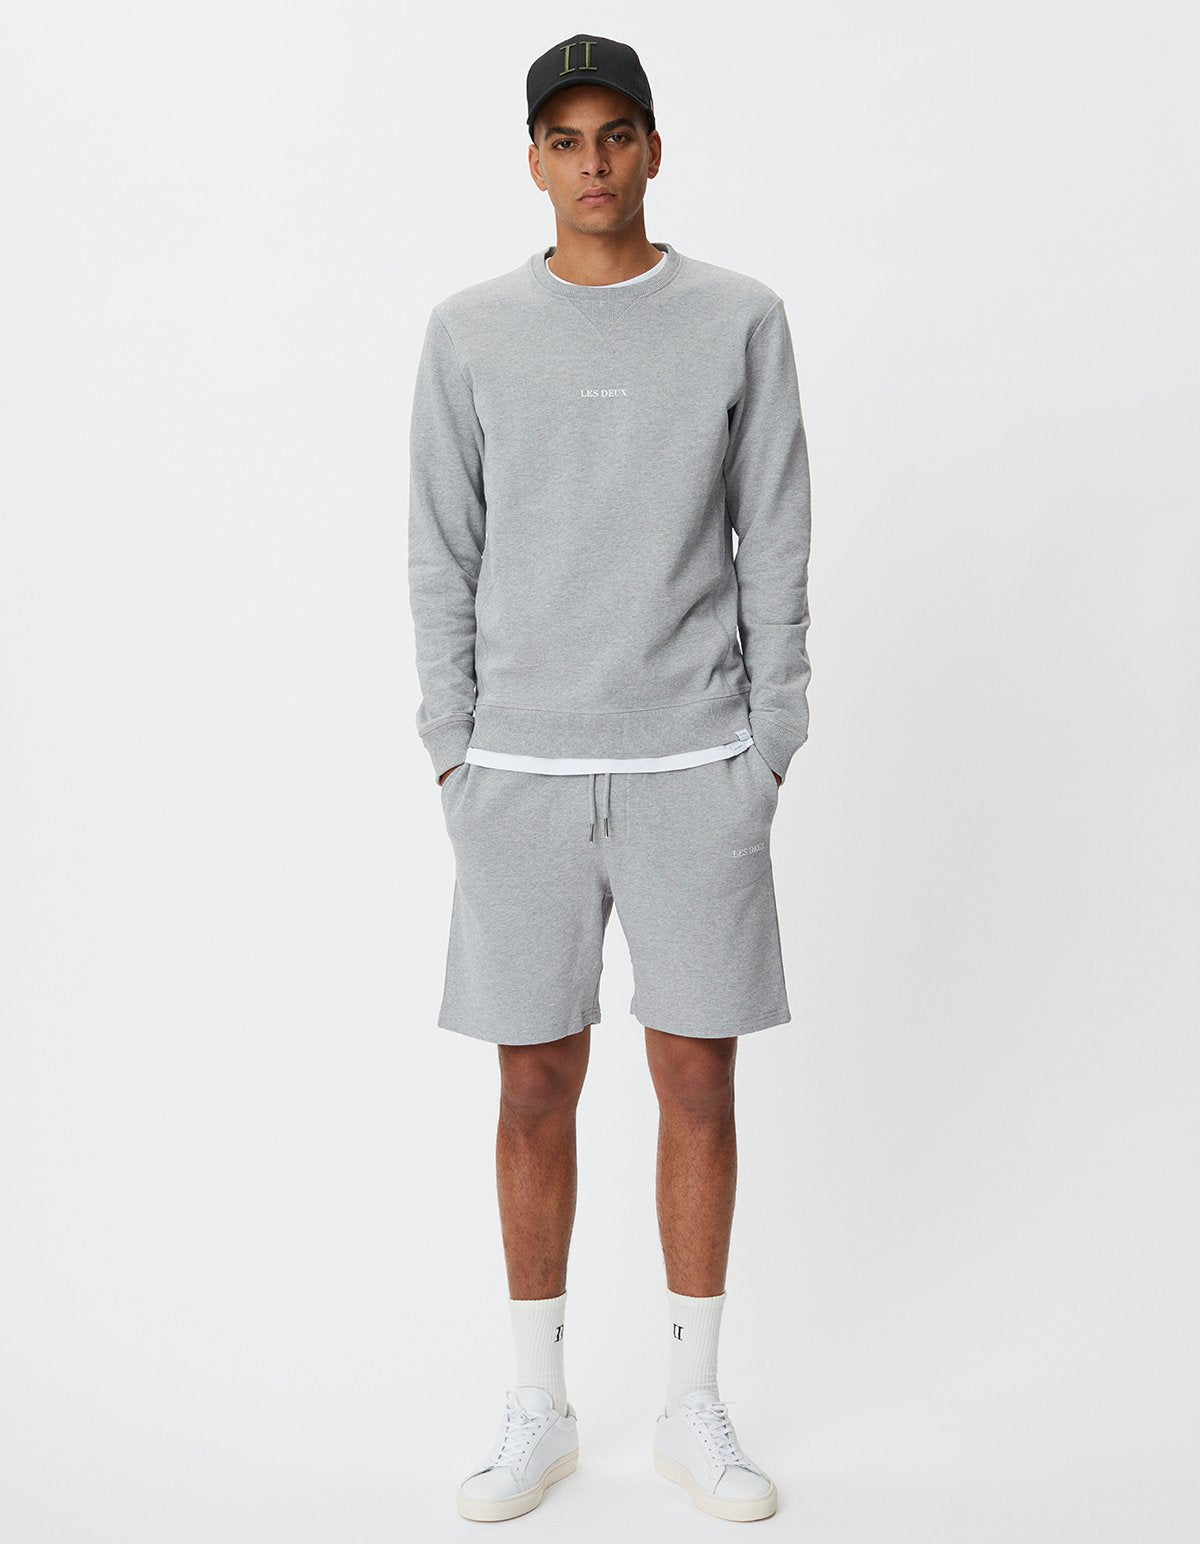 Lens Light Grey Melange Sweat Shorts